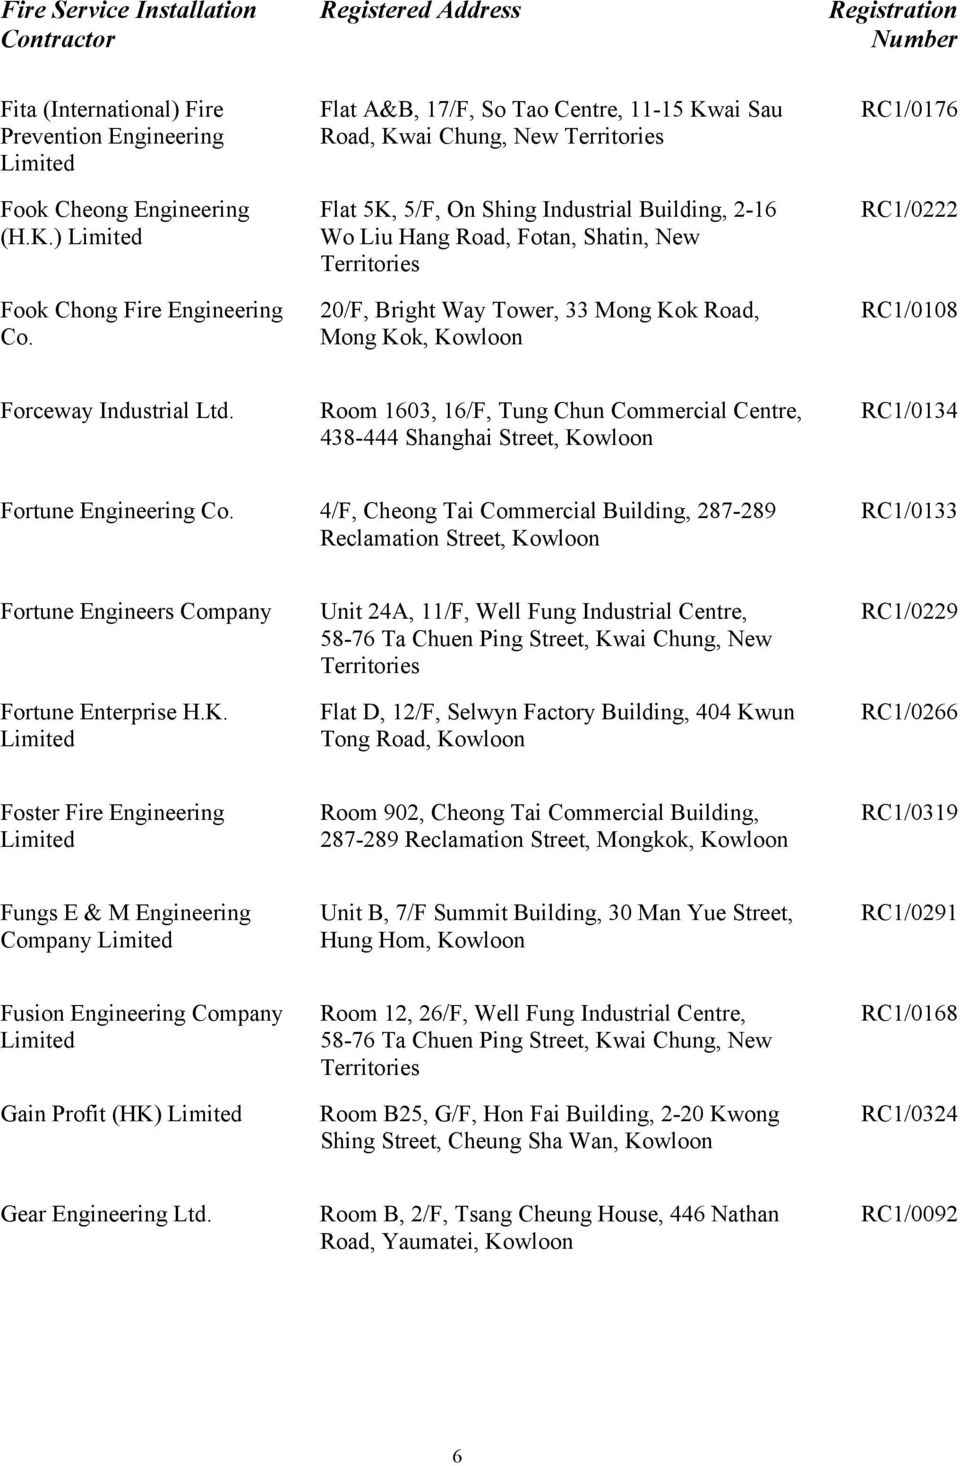 Mong Kok, Kowloon RC1/0176 RC1/0222 RC1/0108 Forceway Industrial Ltd. Room 1603, 16/F, Tung Chun Commercial Centre, 438-444 Shanghai Street, Kowloon RC1/0134 Fortune Engineering Co.